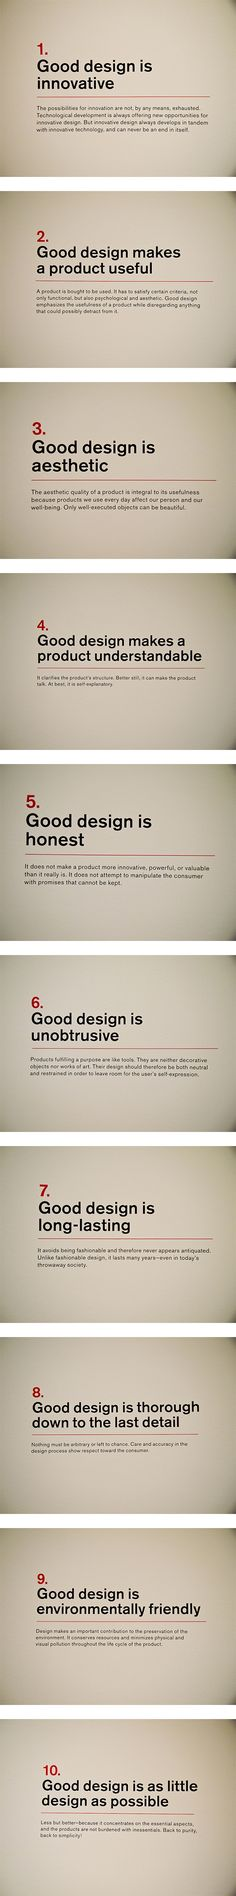 "Dieter Rams' ""Ten principles for Good Design"""